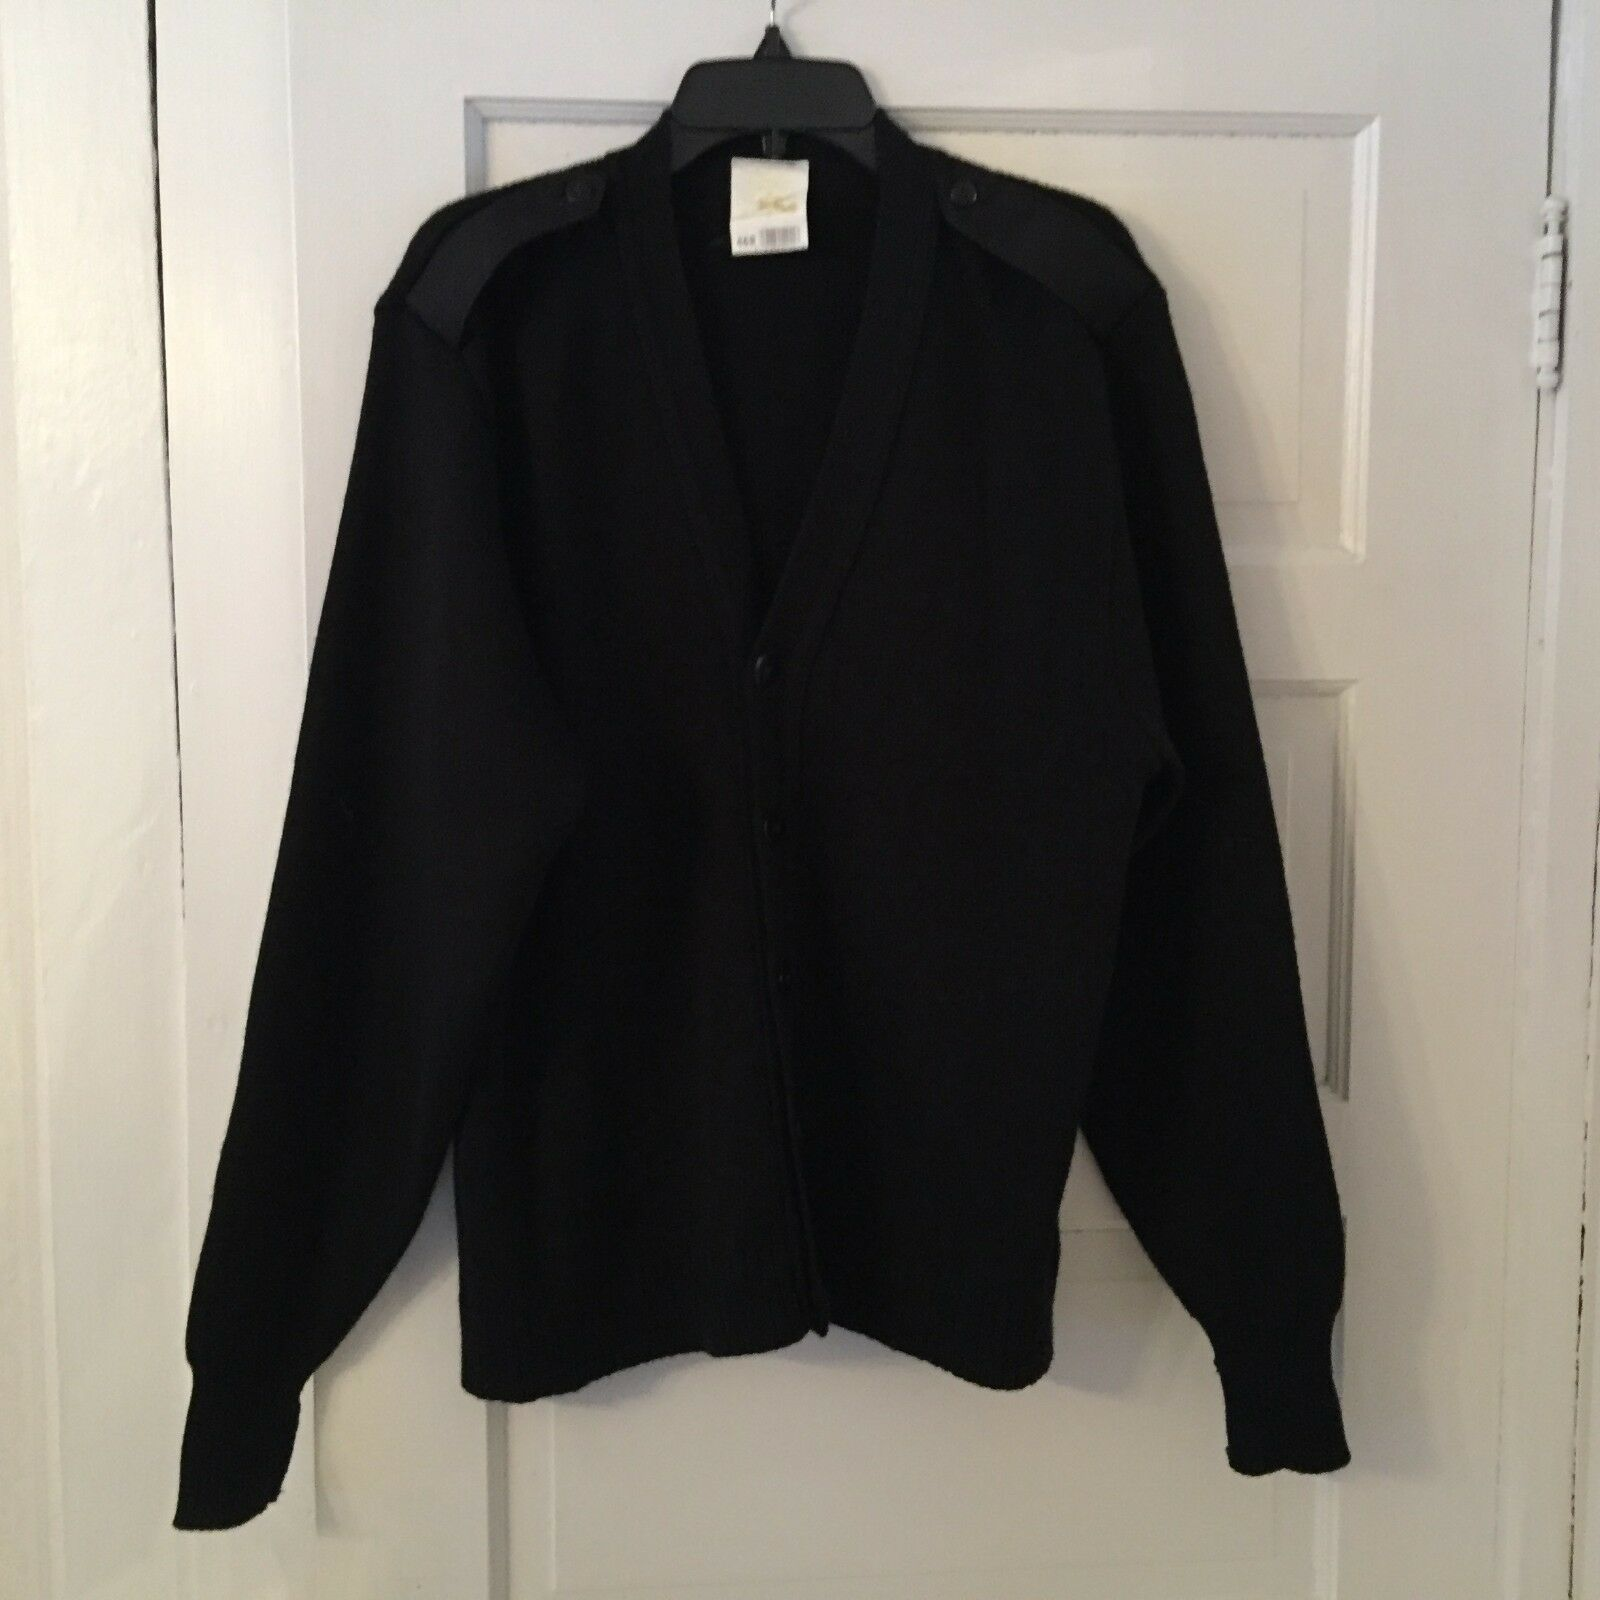 Men's Military Equipment Wool Blend Sweater, Size 46R, Elbow Patches